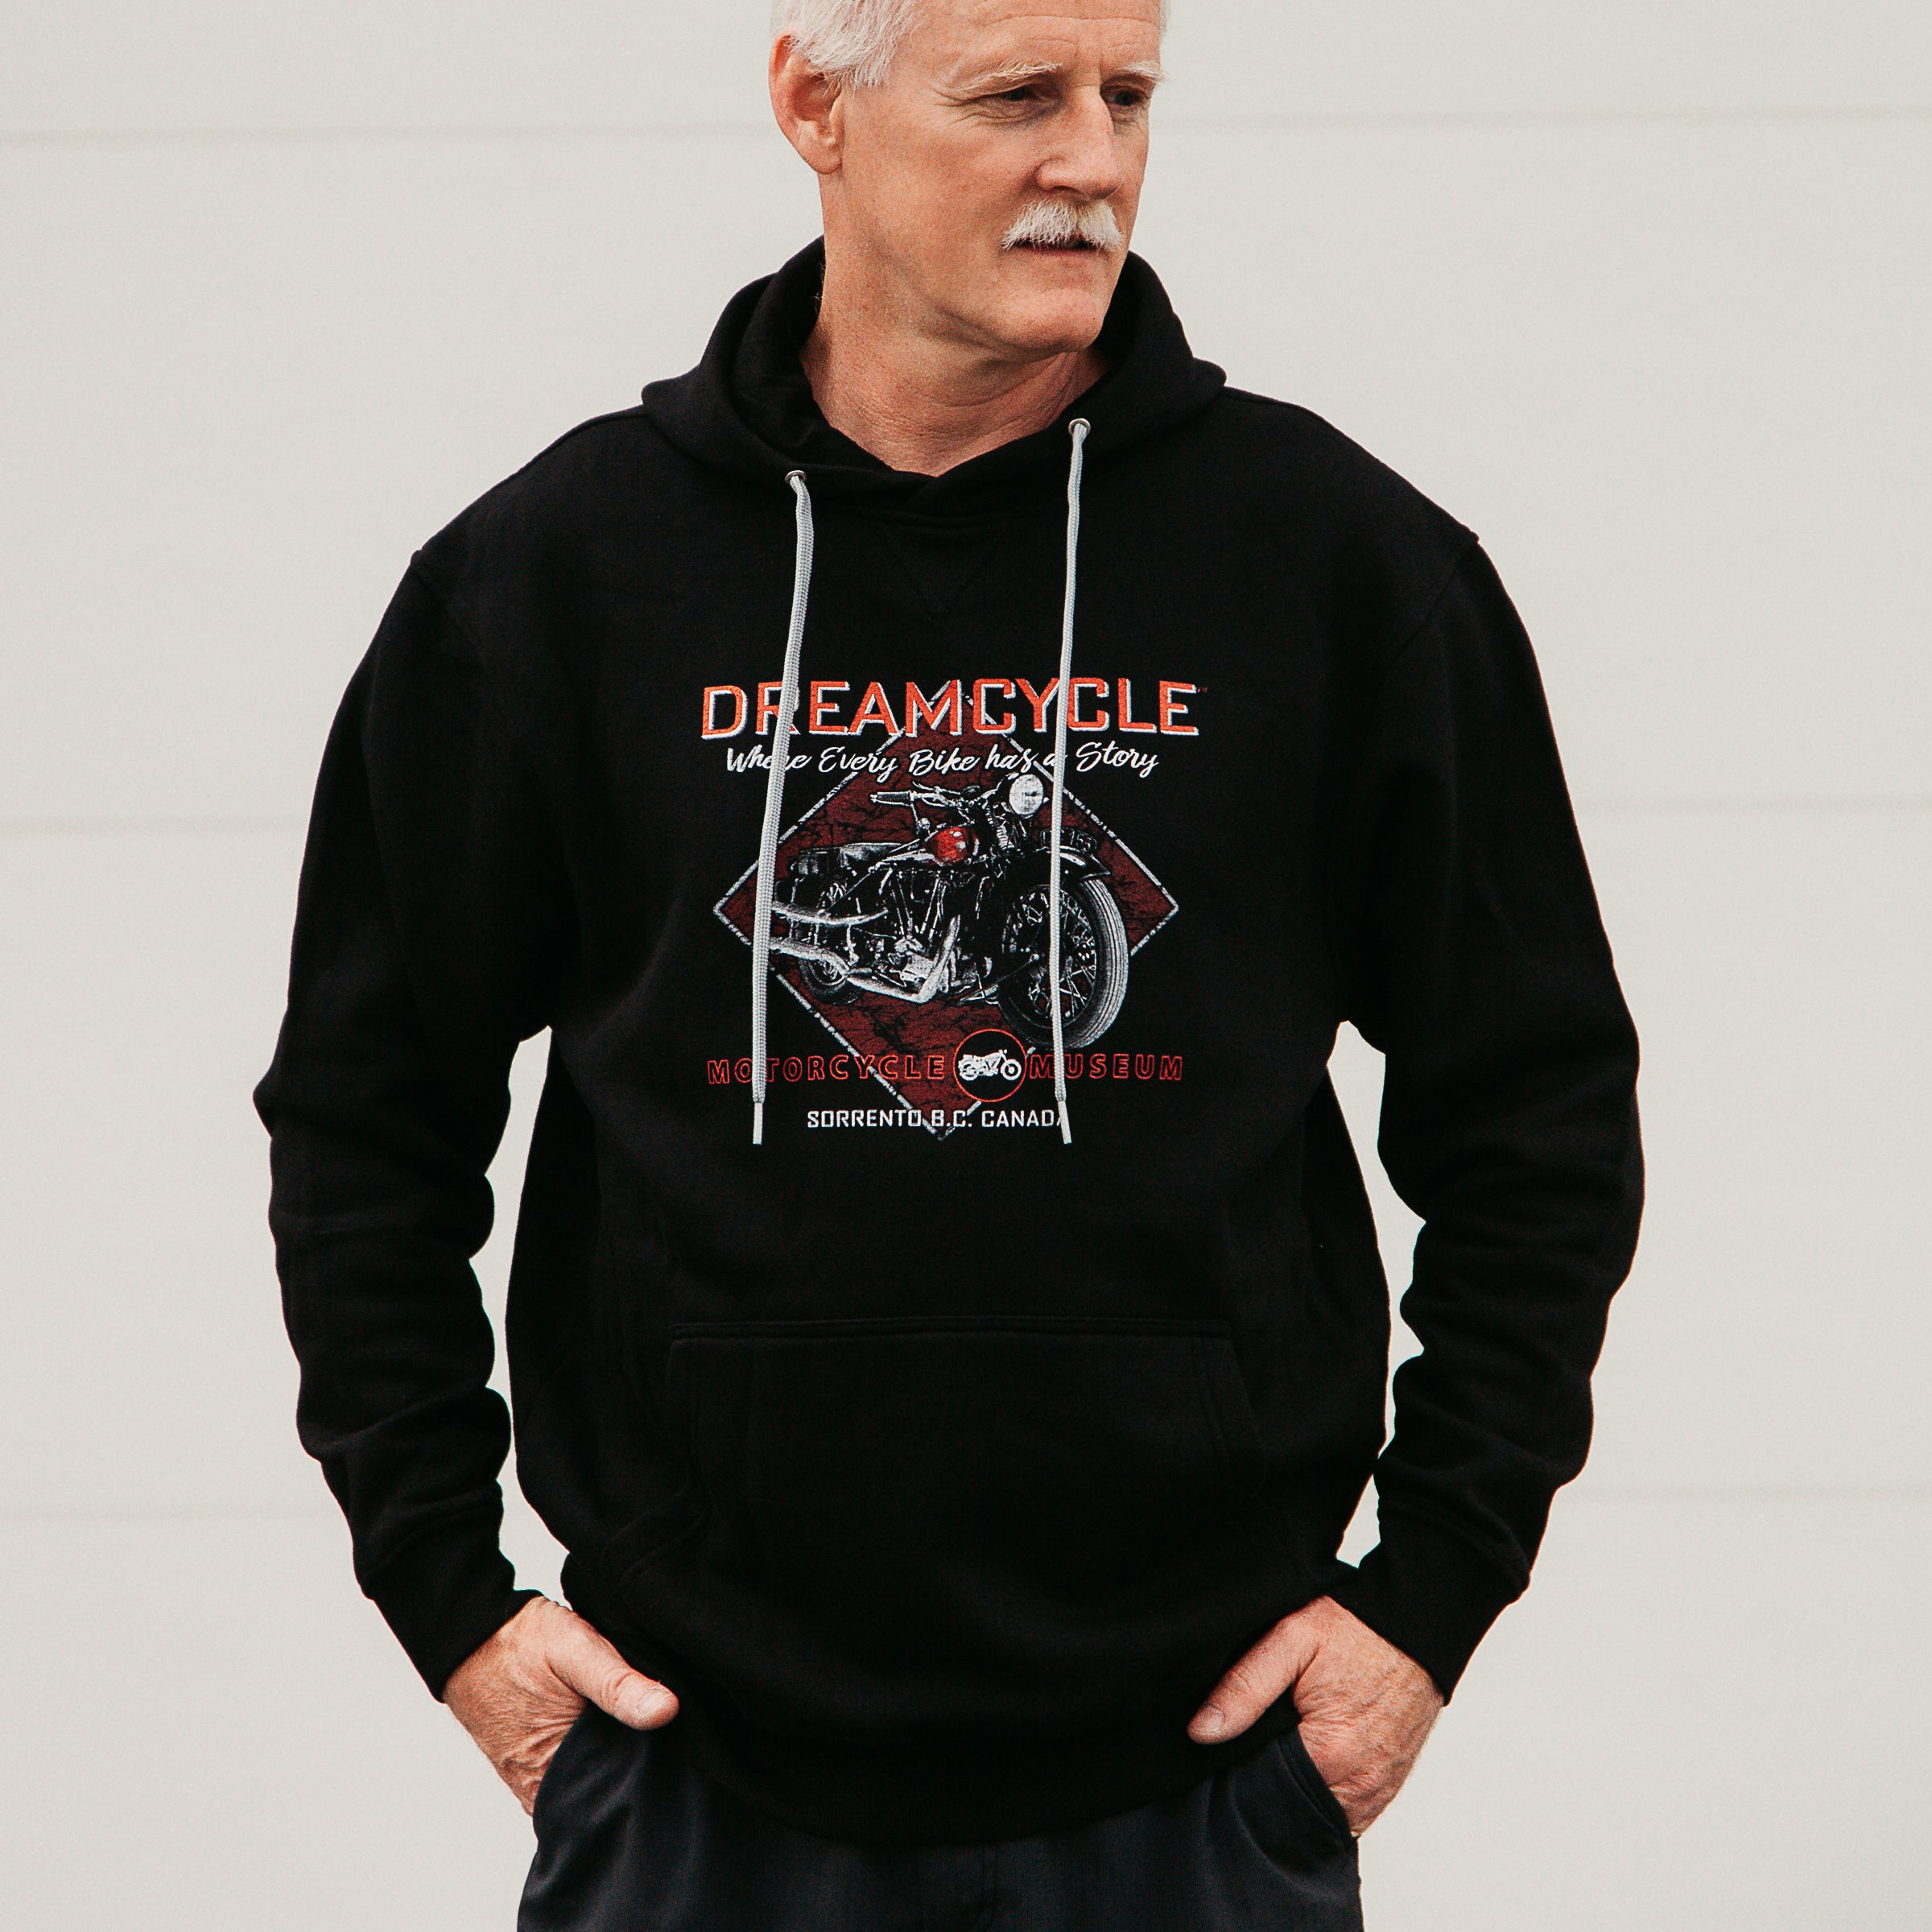 Dreamcycle Motorcycle Museum |  Male modelling dreamcycle hoodie in lifestyle environment.